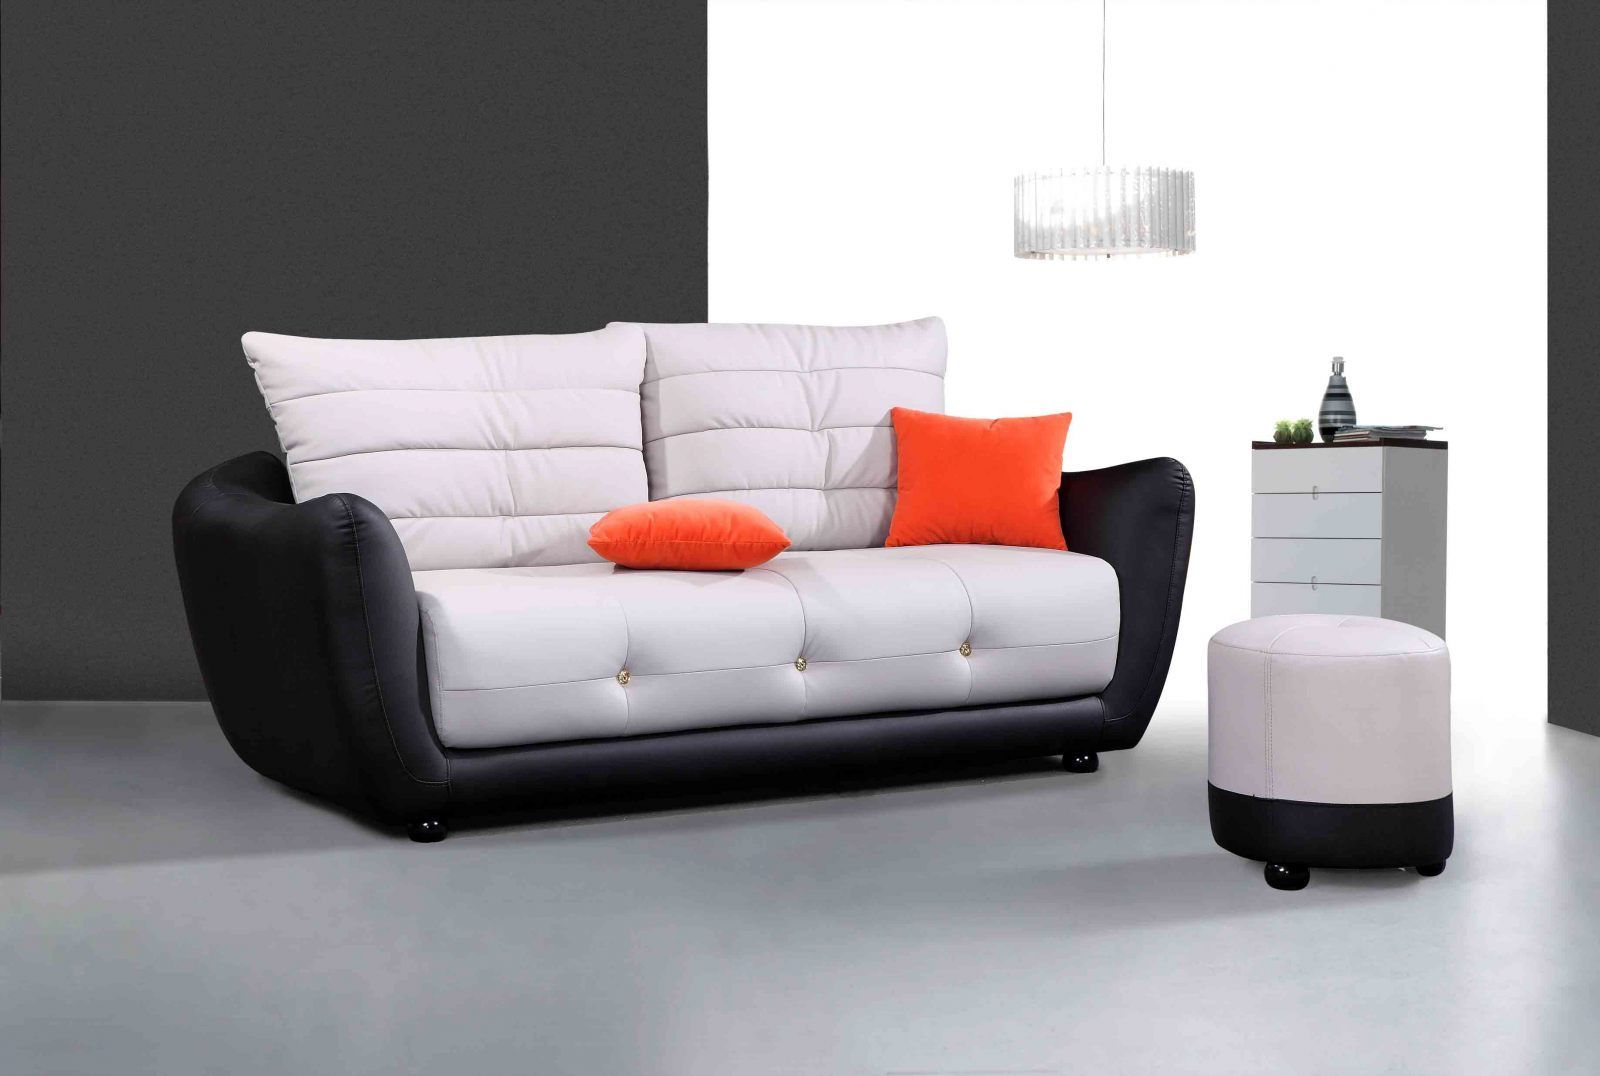 95 Reference Of Sofa Designer Moderno In 2020 Modern Recliner Sofa Modern Sofa Designs Couch And Loveseat